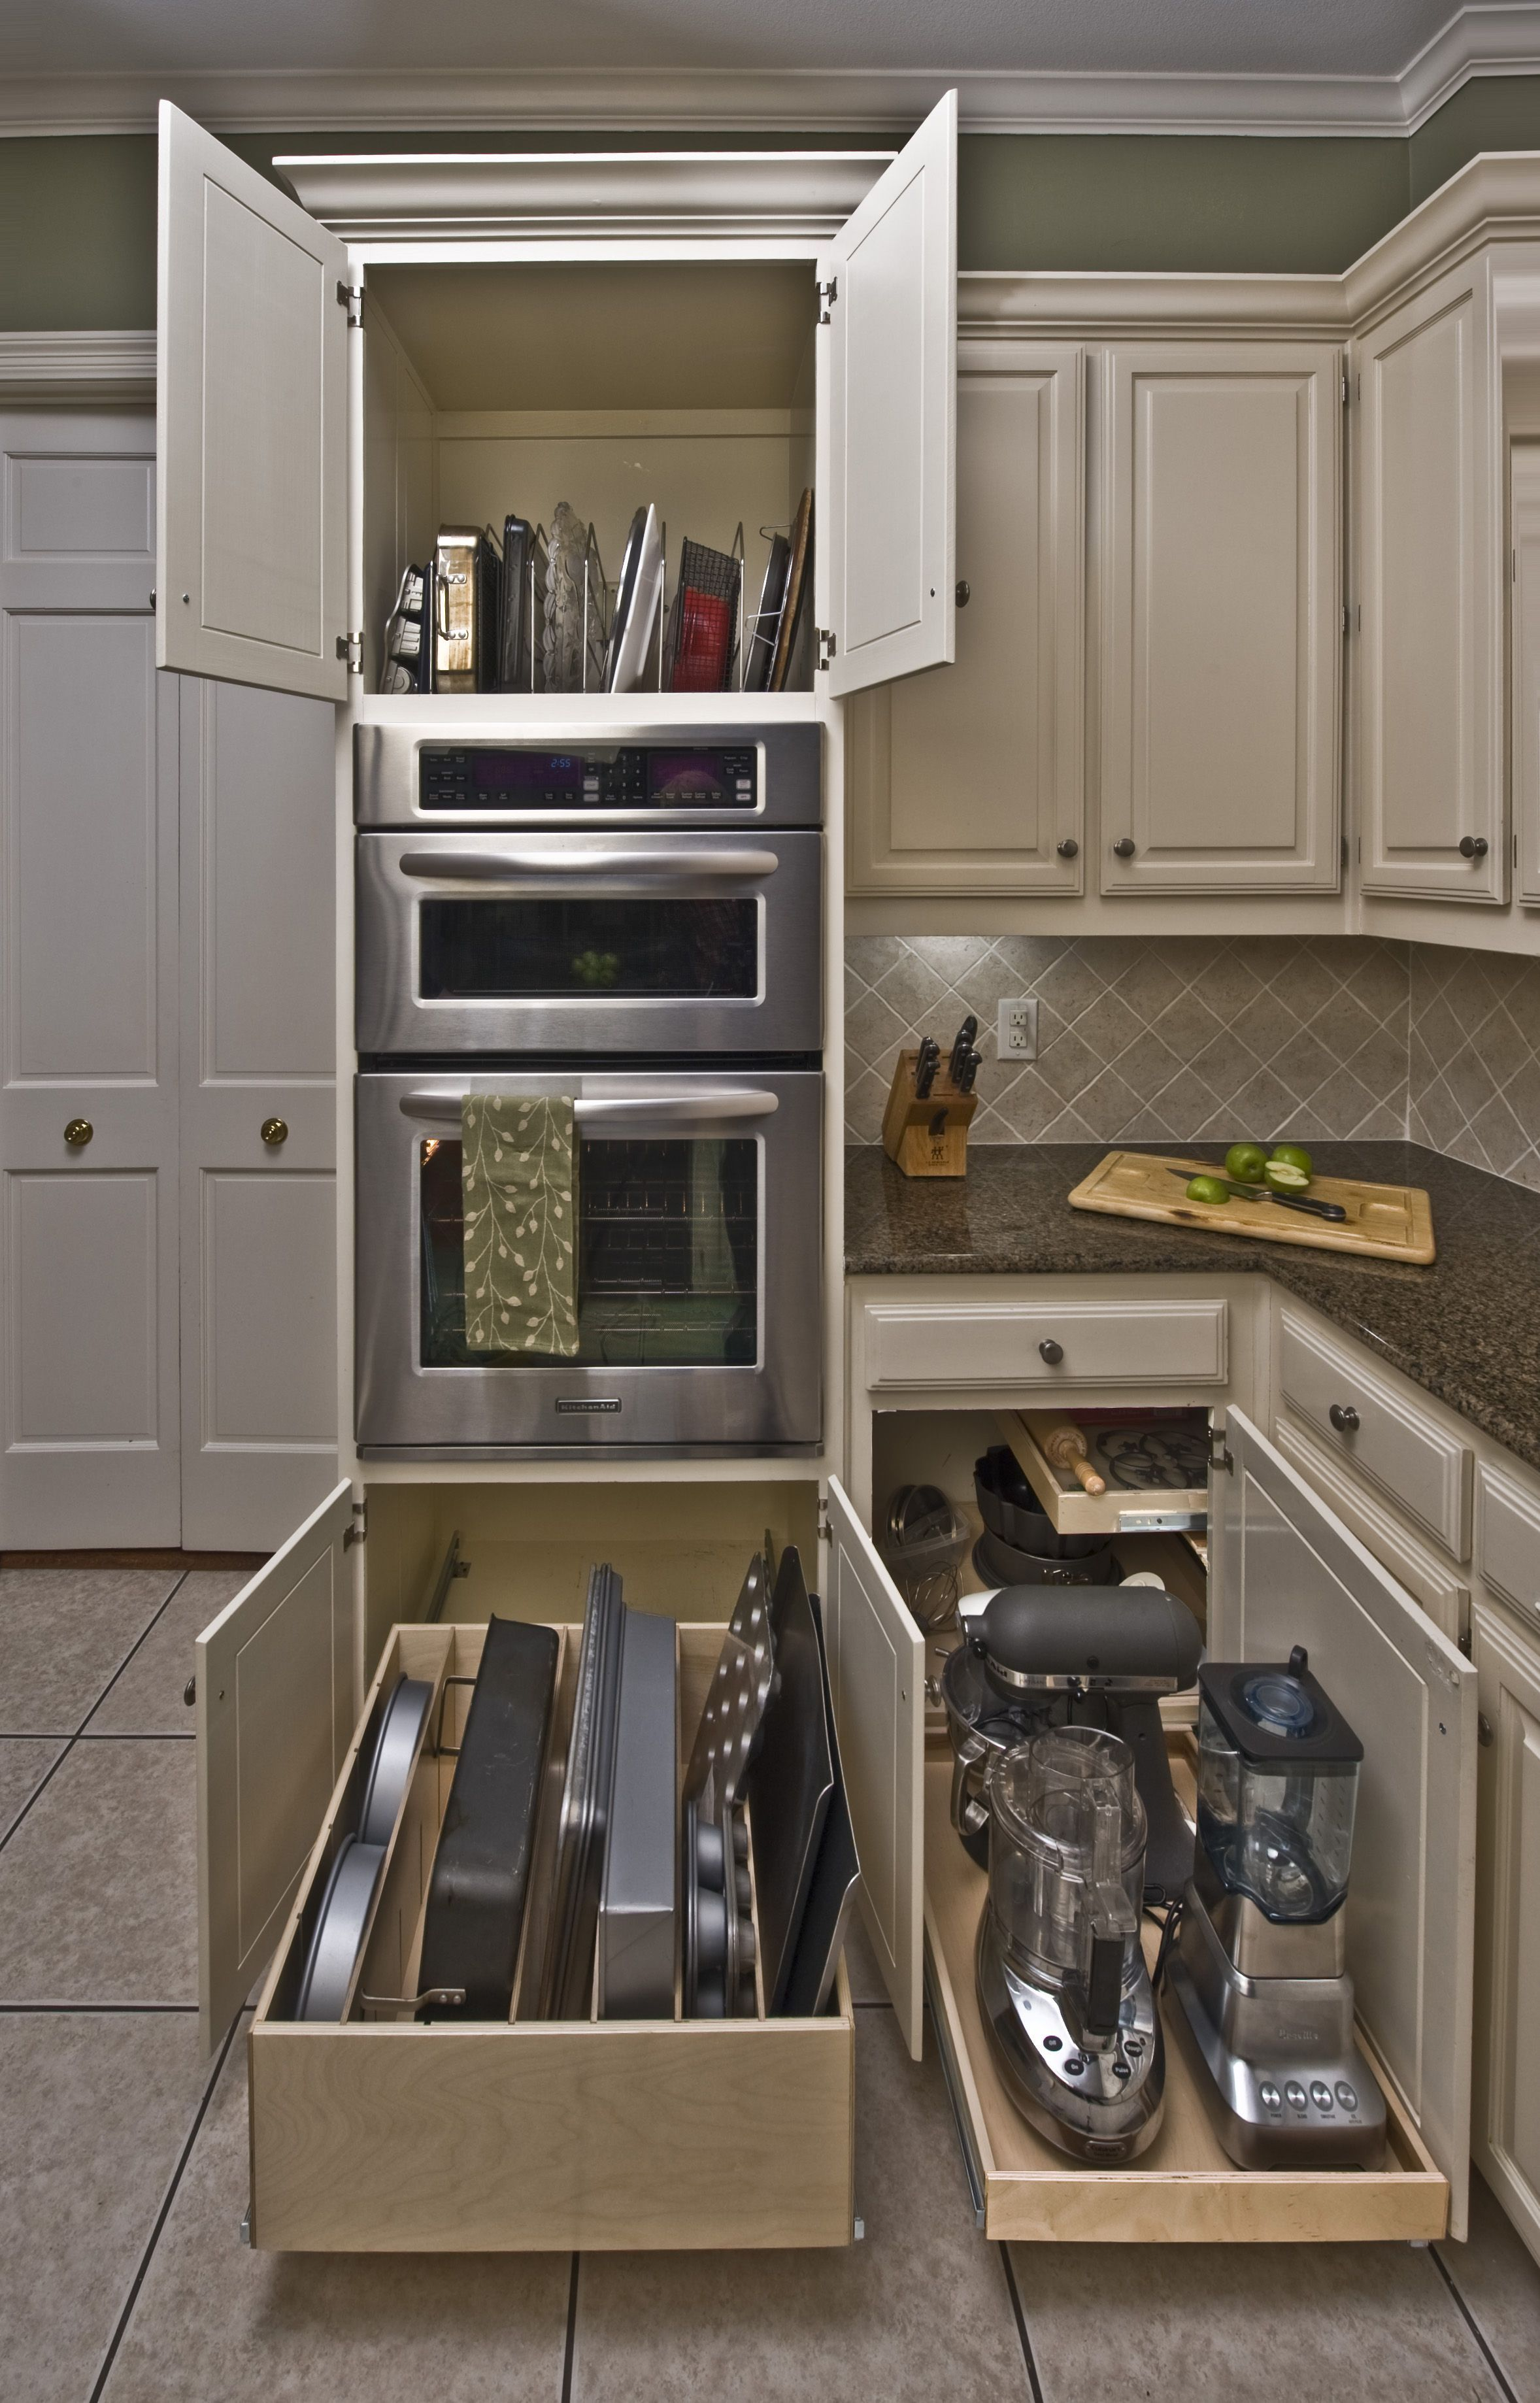 Magnificent modern kitchen cabinetry shelving organizers added pull out kitchen shelves and storage design photo